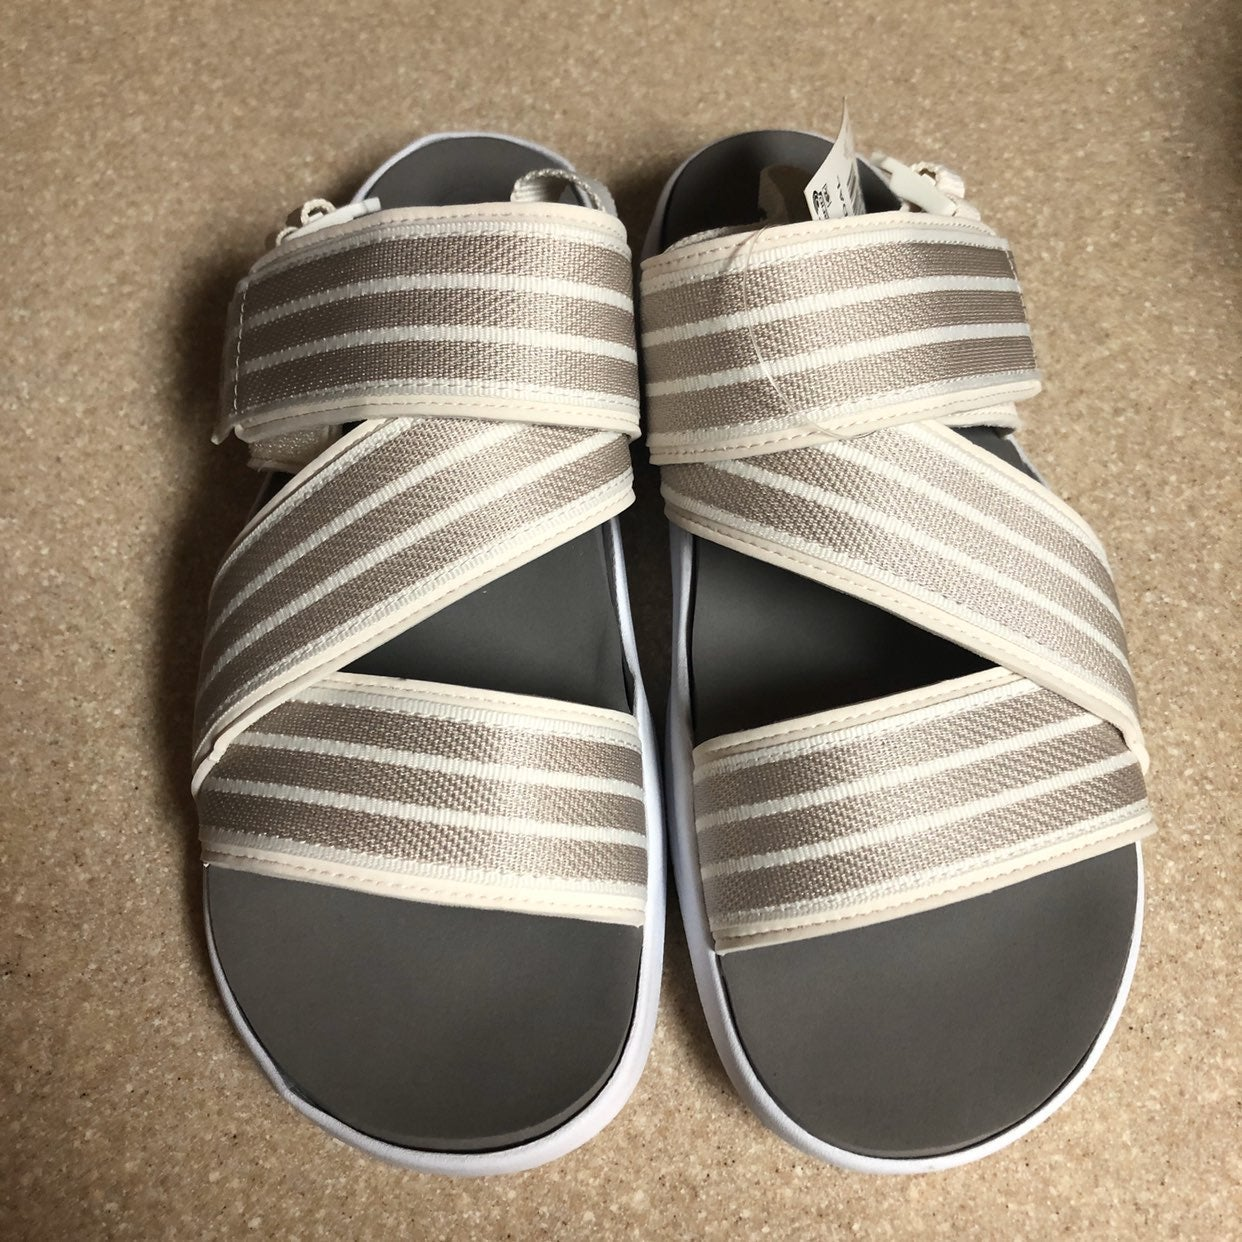 Adidas 90s sandals off white new